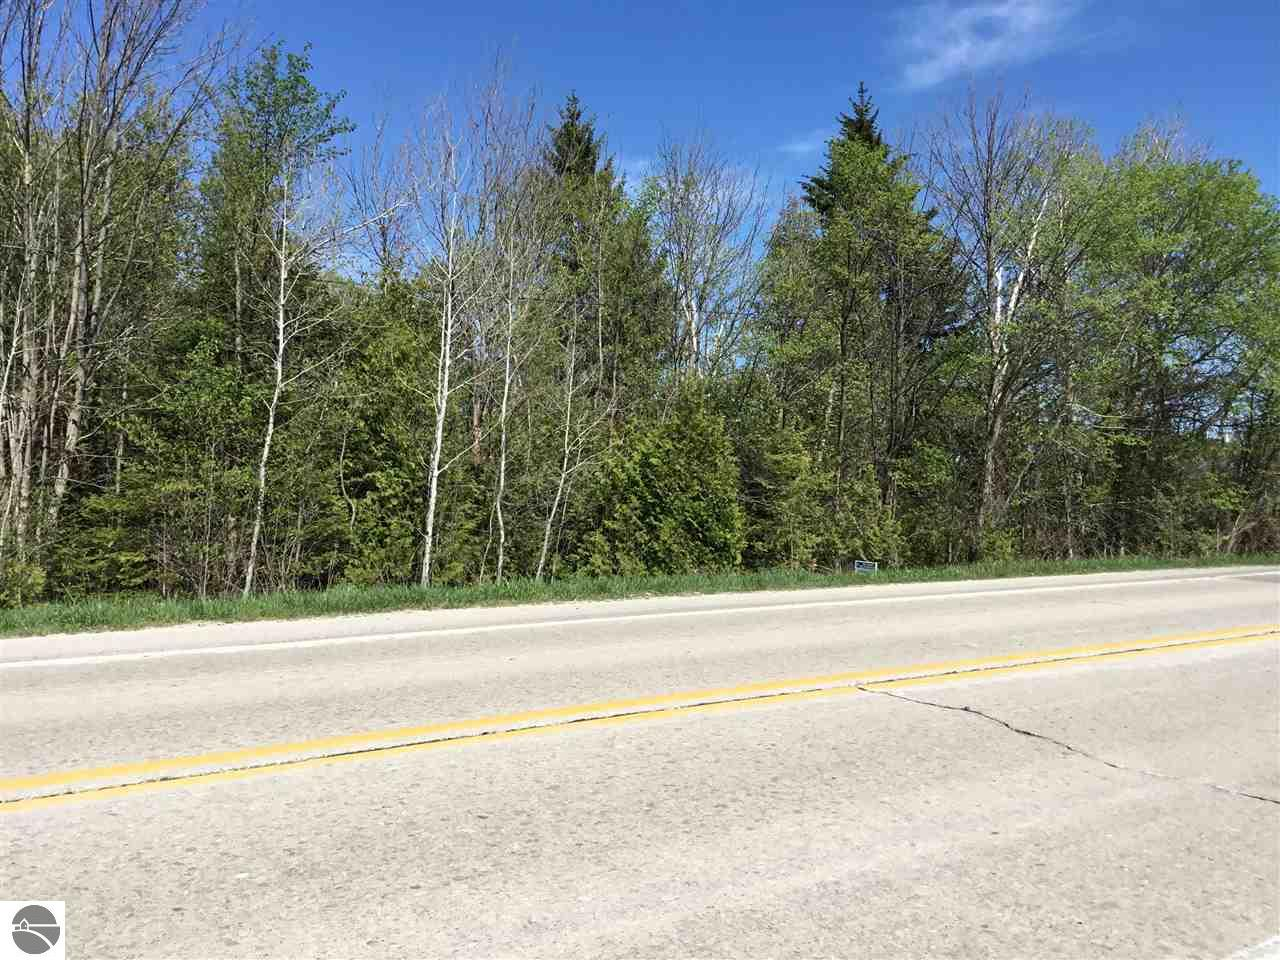 Michigan leelanau county northport 49670 - Property For Sale At 1274 S Peck Road Suttons Bay Mi 49682